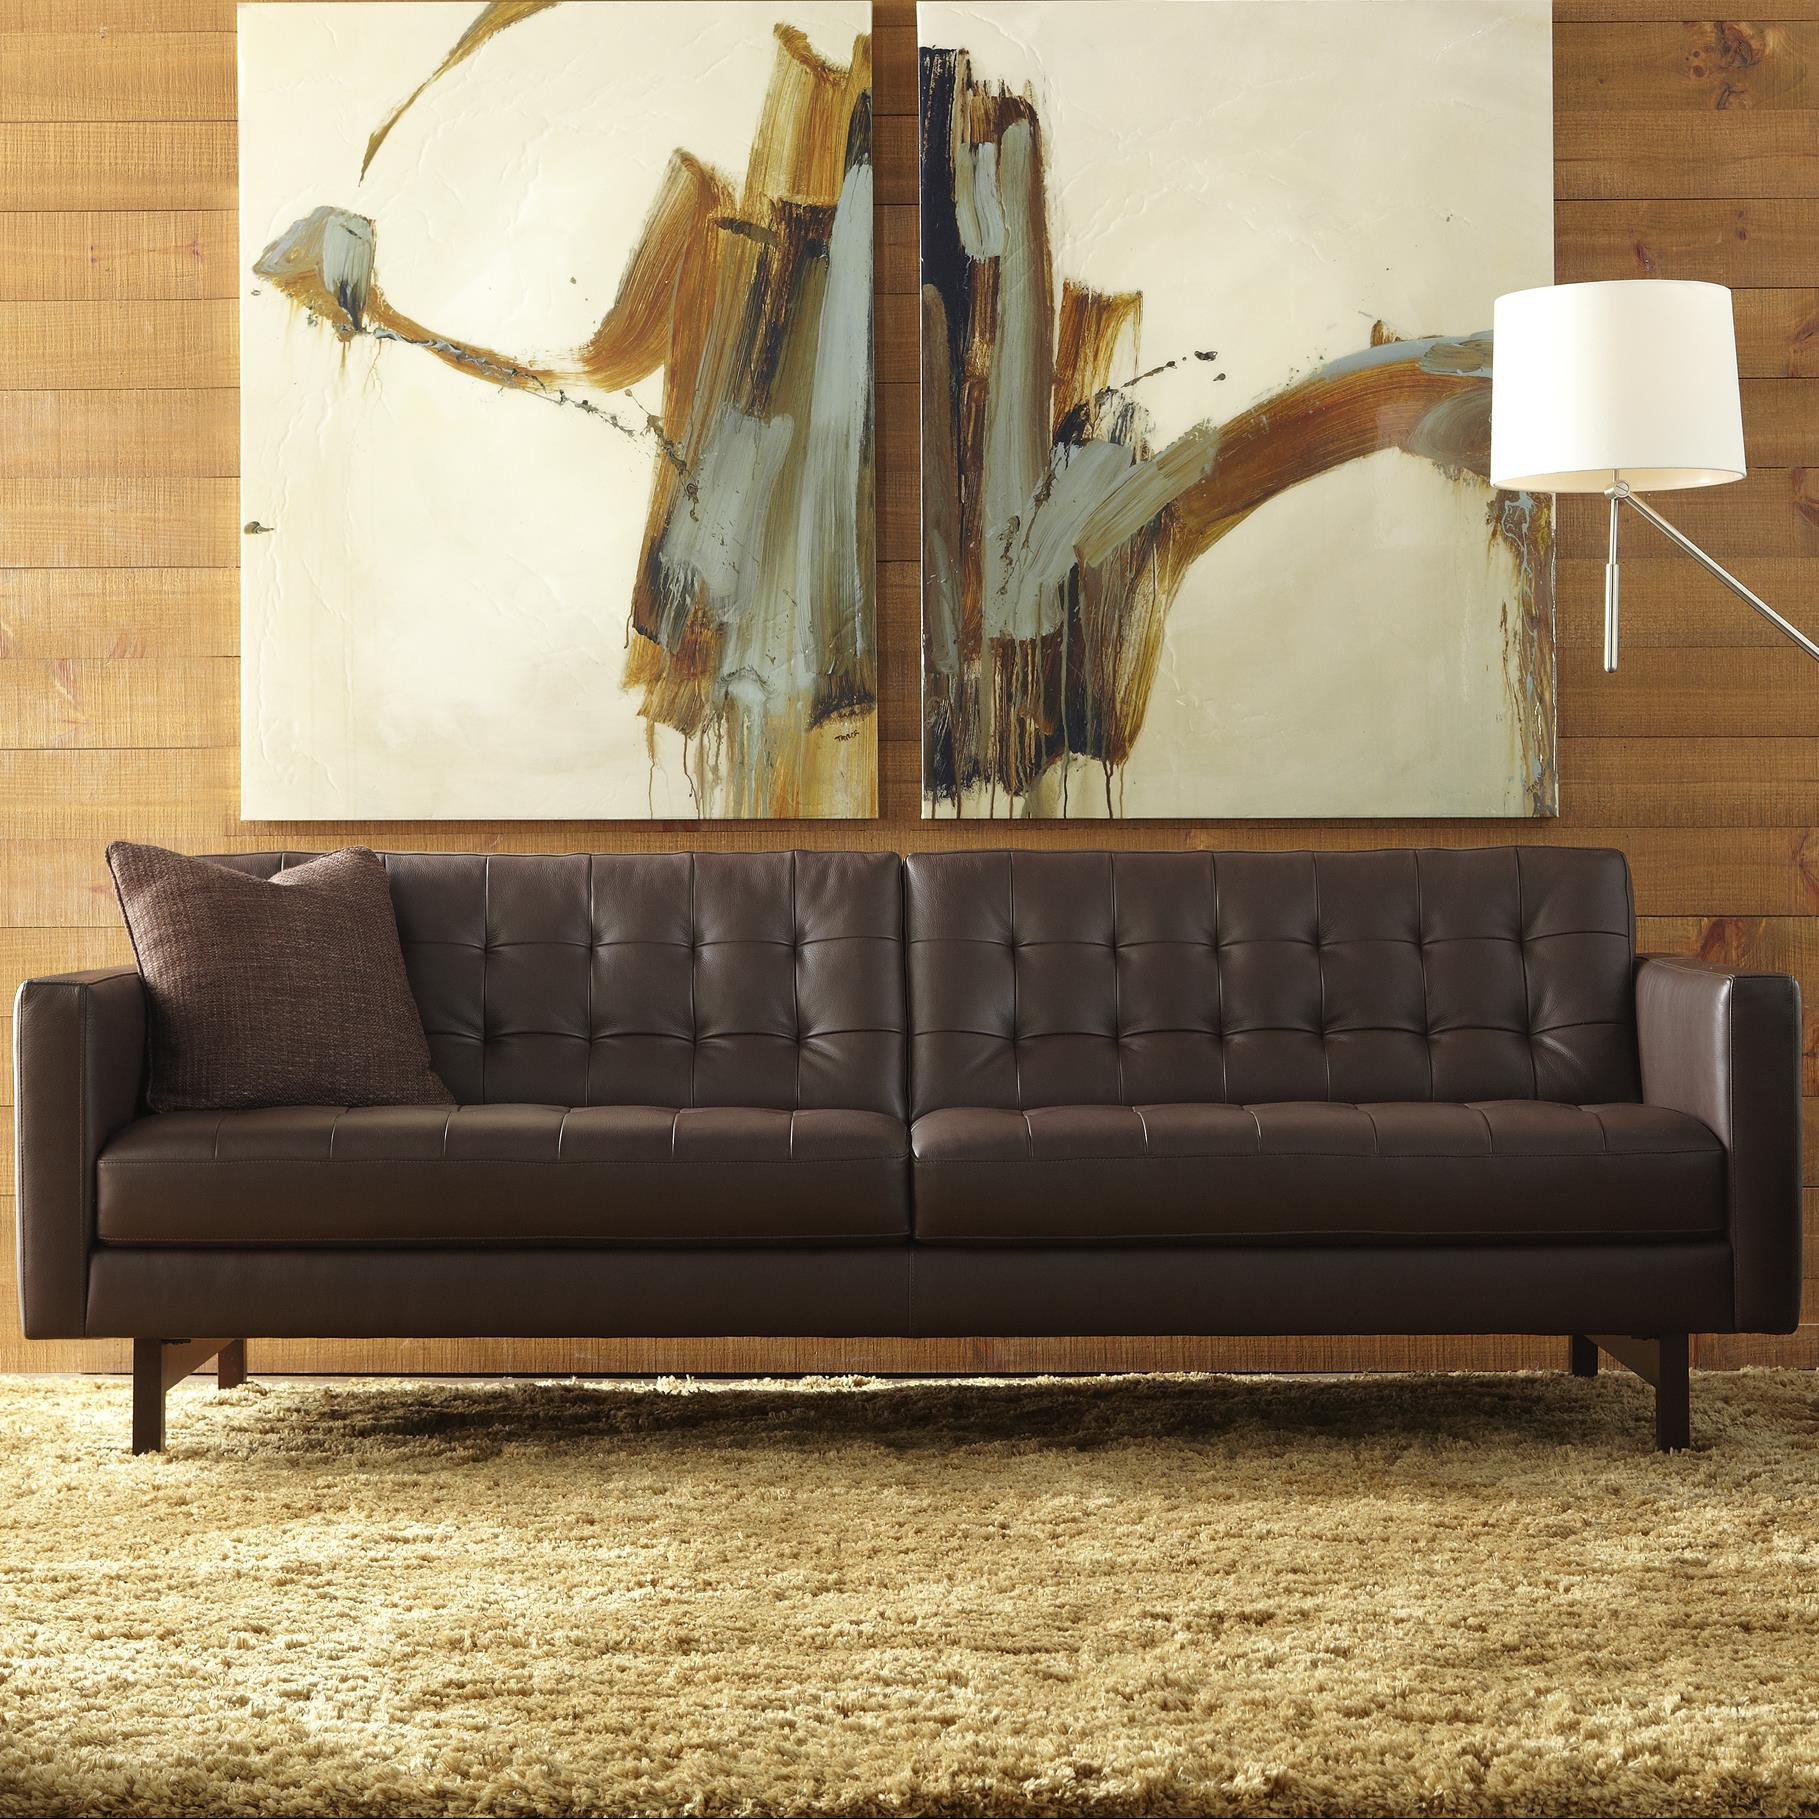 American Leather Parker Casual Sofa With Buttonless Tufted Seat Back Jacksonville Furniture